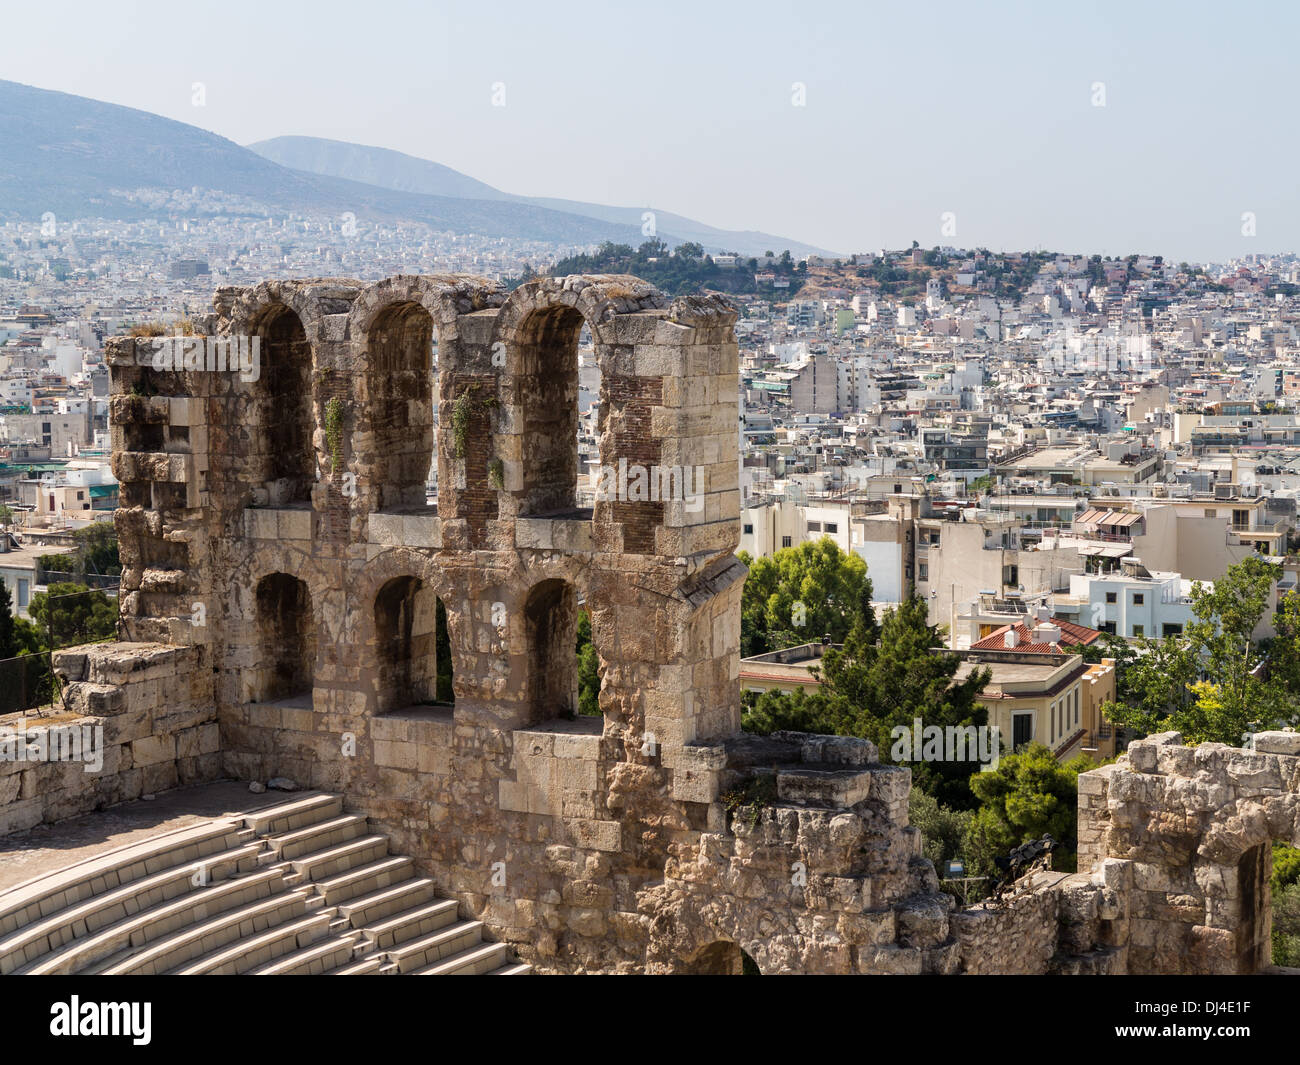 The Odeon of Herodes Atticus amphitheatre from the Acropolis, Athens - with the old ancient Greece city behind - Stock Image